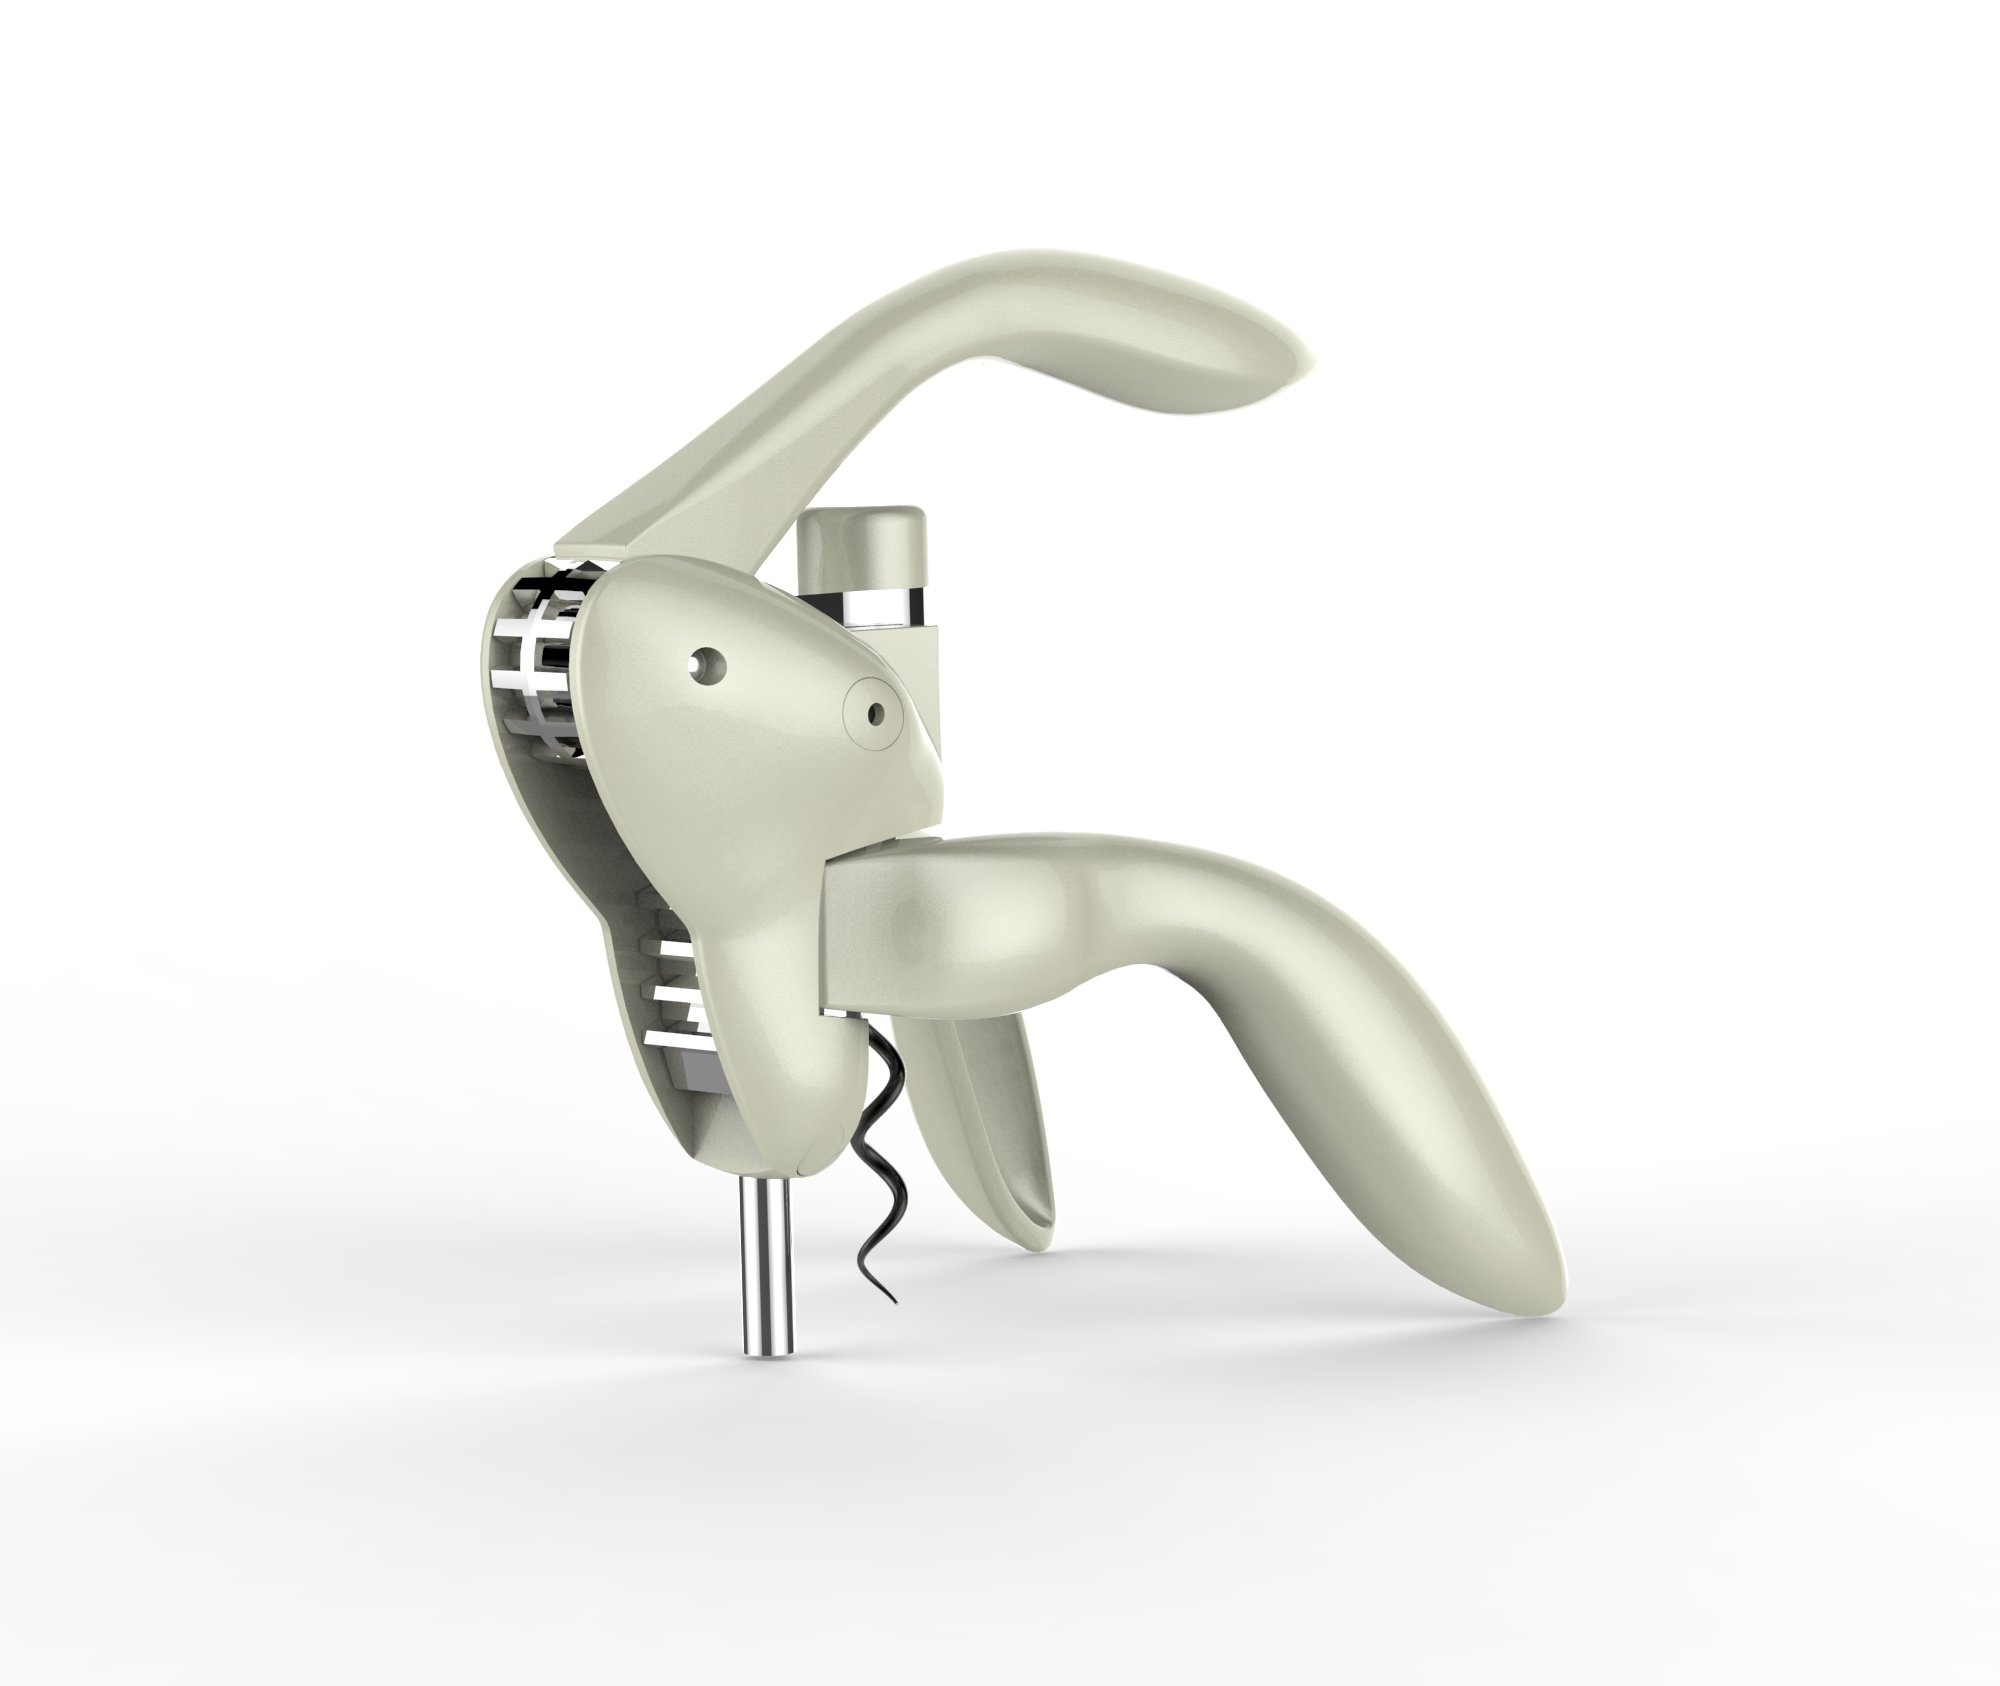 Houdini Lever Corkscrew with Foil Cutter and Extra Spiral (Silver) by Metrokane